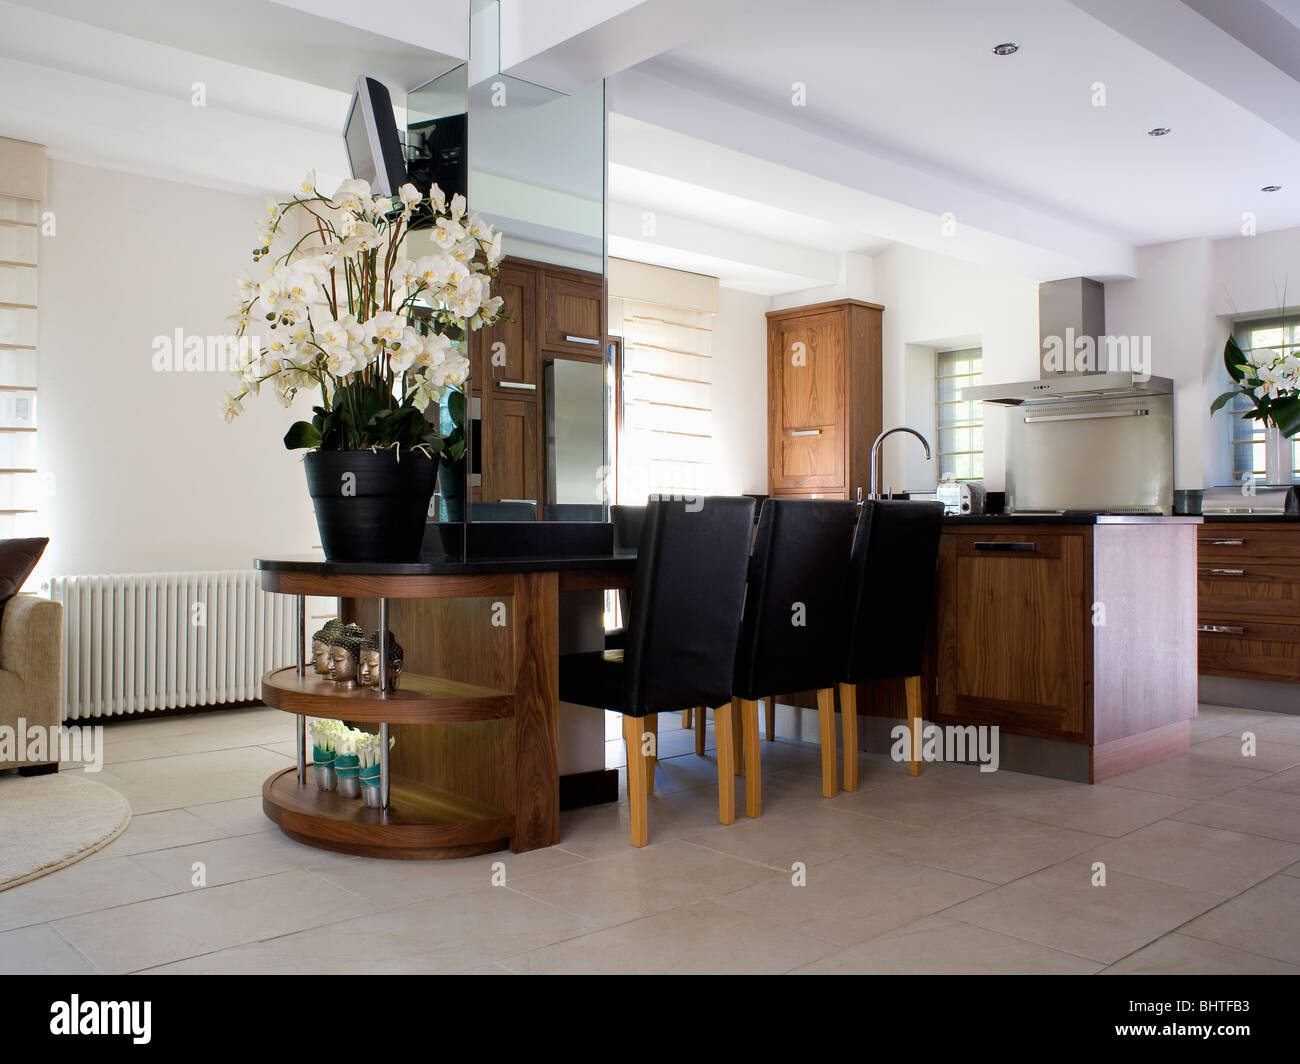 Tall Cream Orchids In Pot On Mahogany Unit Large Modern Kitchen Dining Room With Mirrored Wall And Limestone Flooring